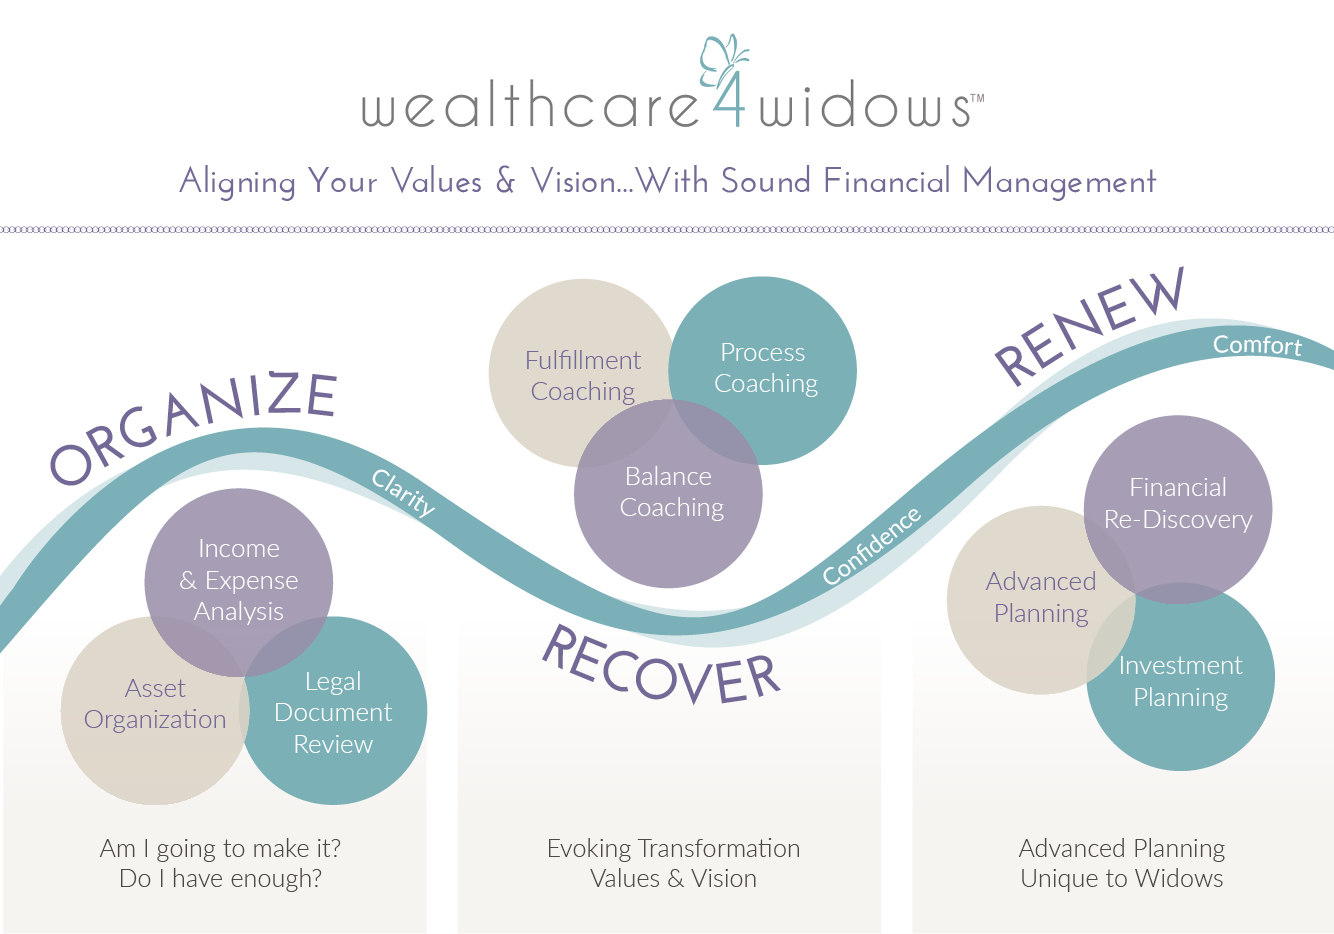 Wealthcare4Widows Personalized Financial Planning Process